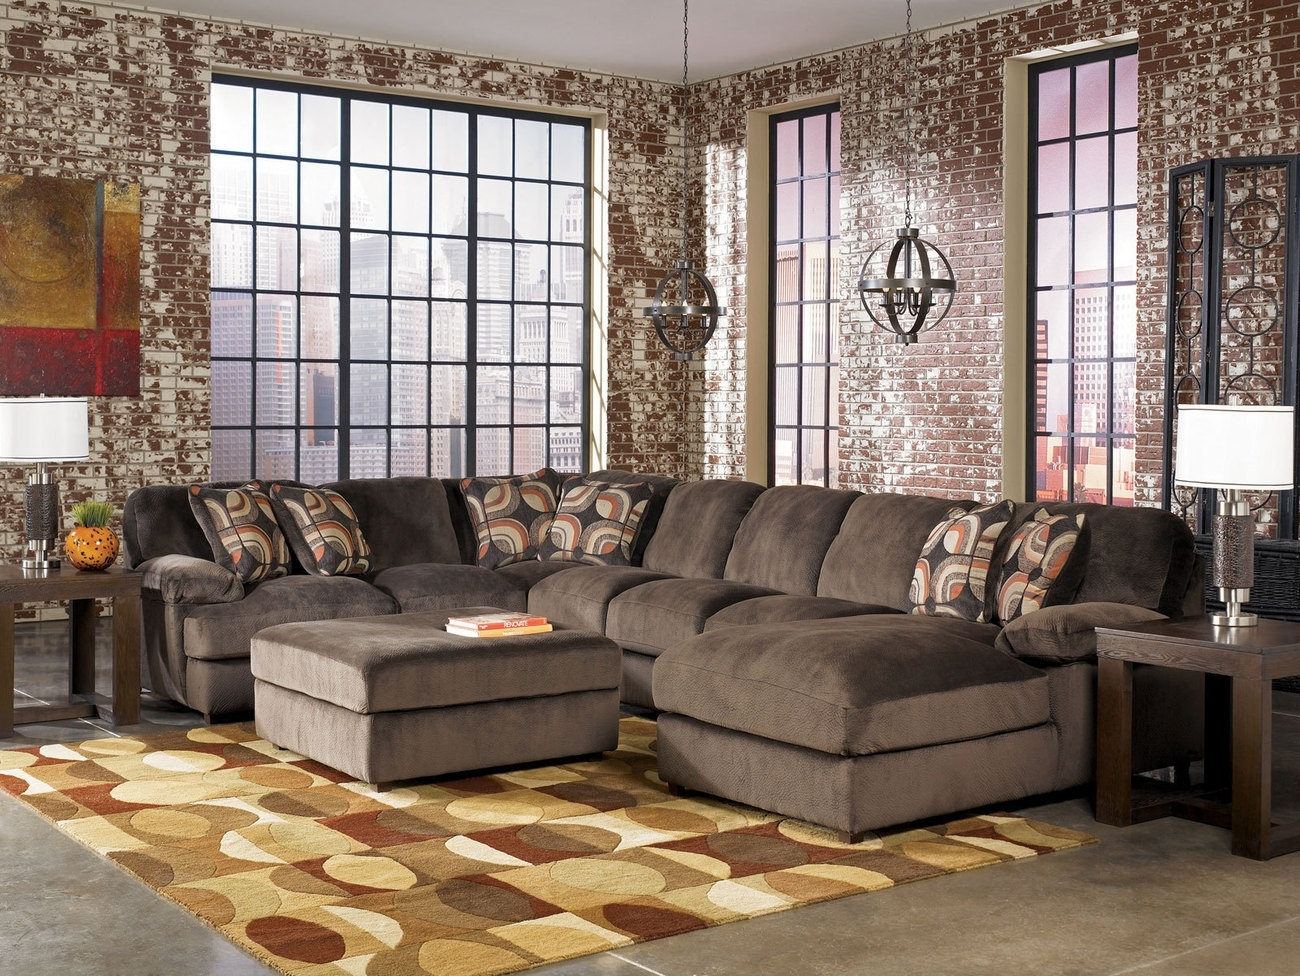 Unique Plush Sectional Sofas 32 For Sofa Design Ideas With Plush With Regard To Plush Sectional Sofas (View 7 of 10)